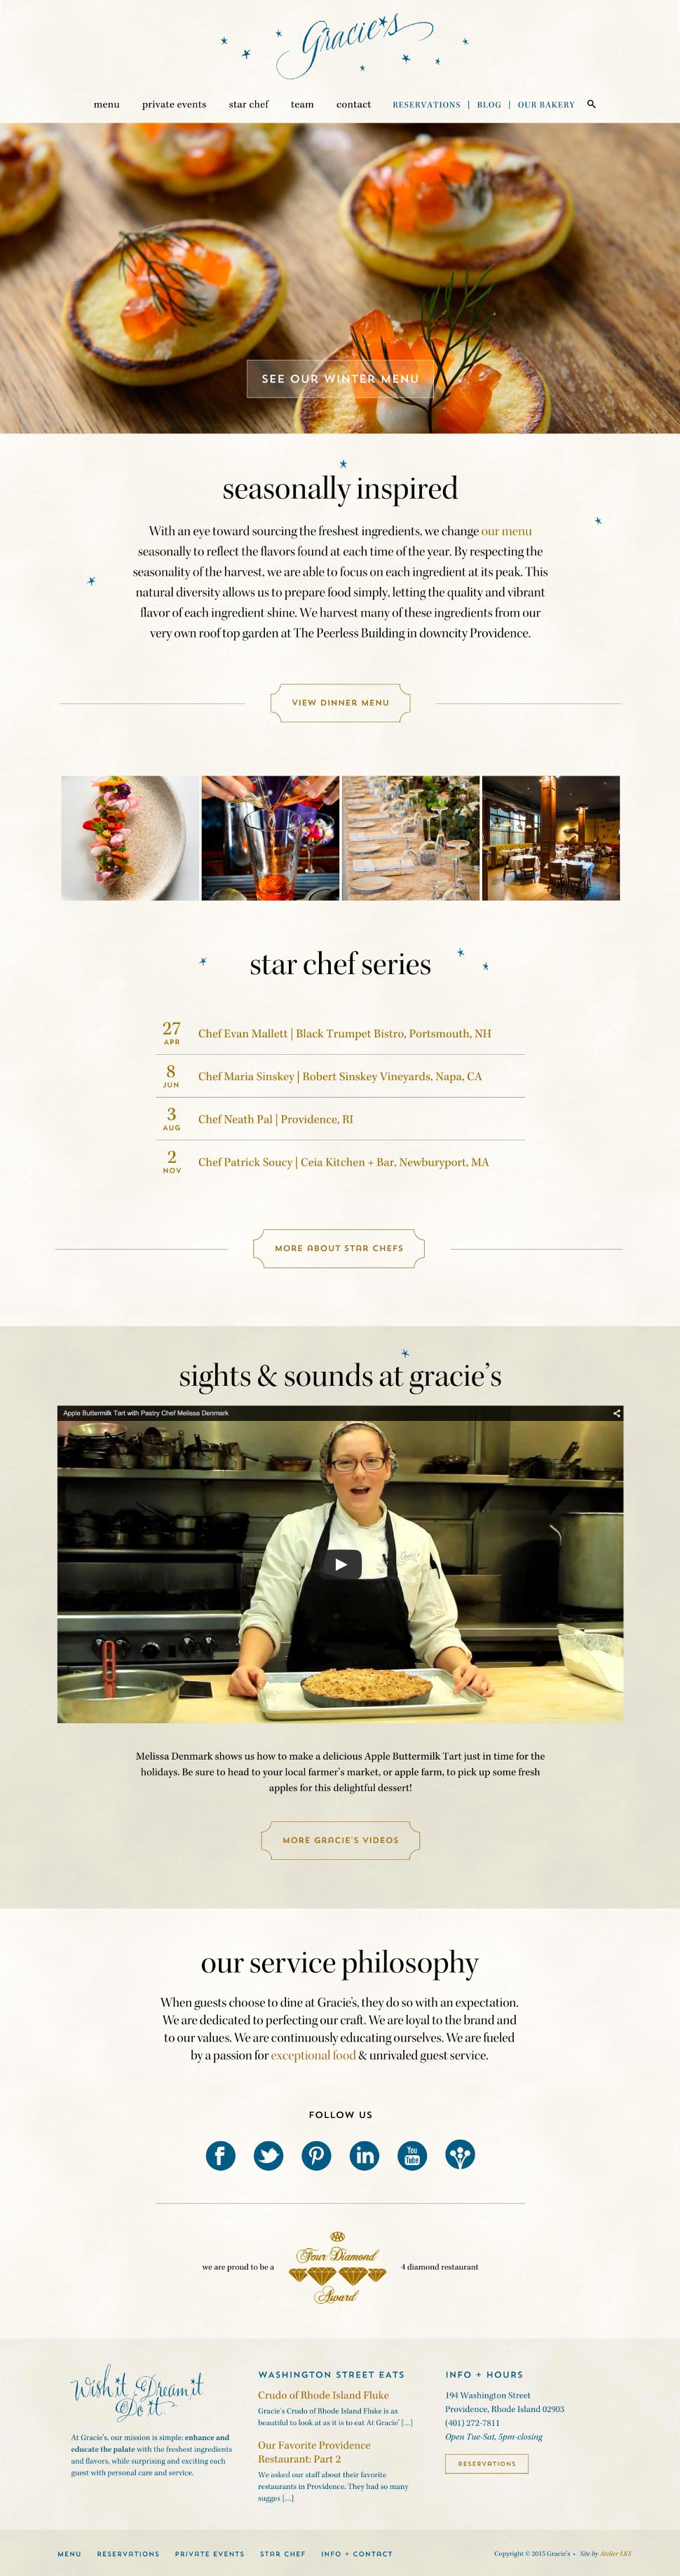 responsive website design for restaurants